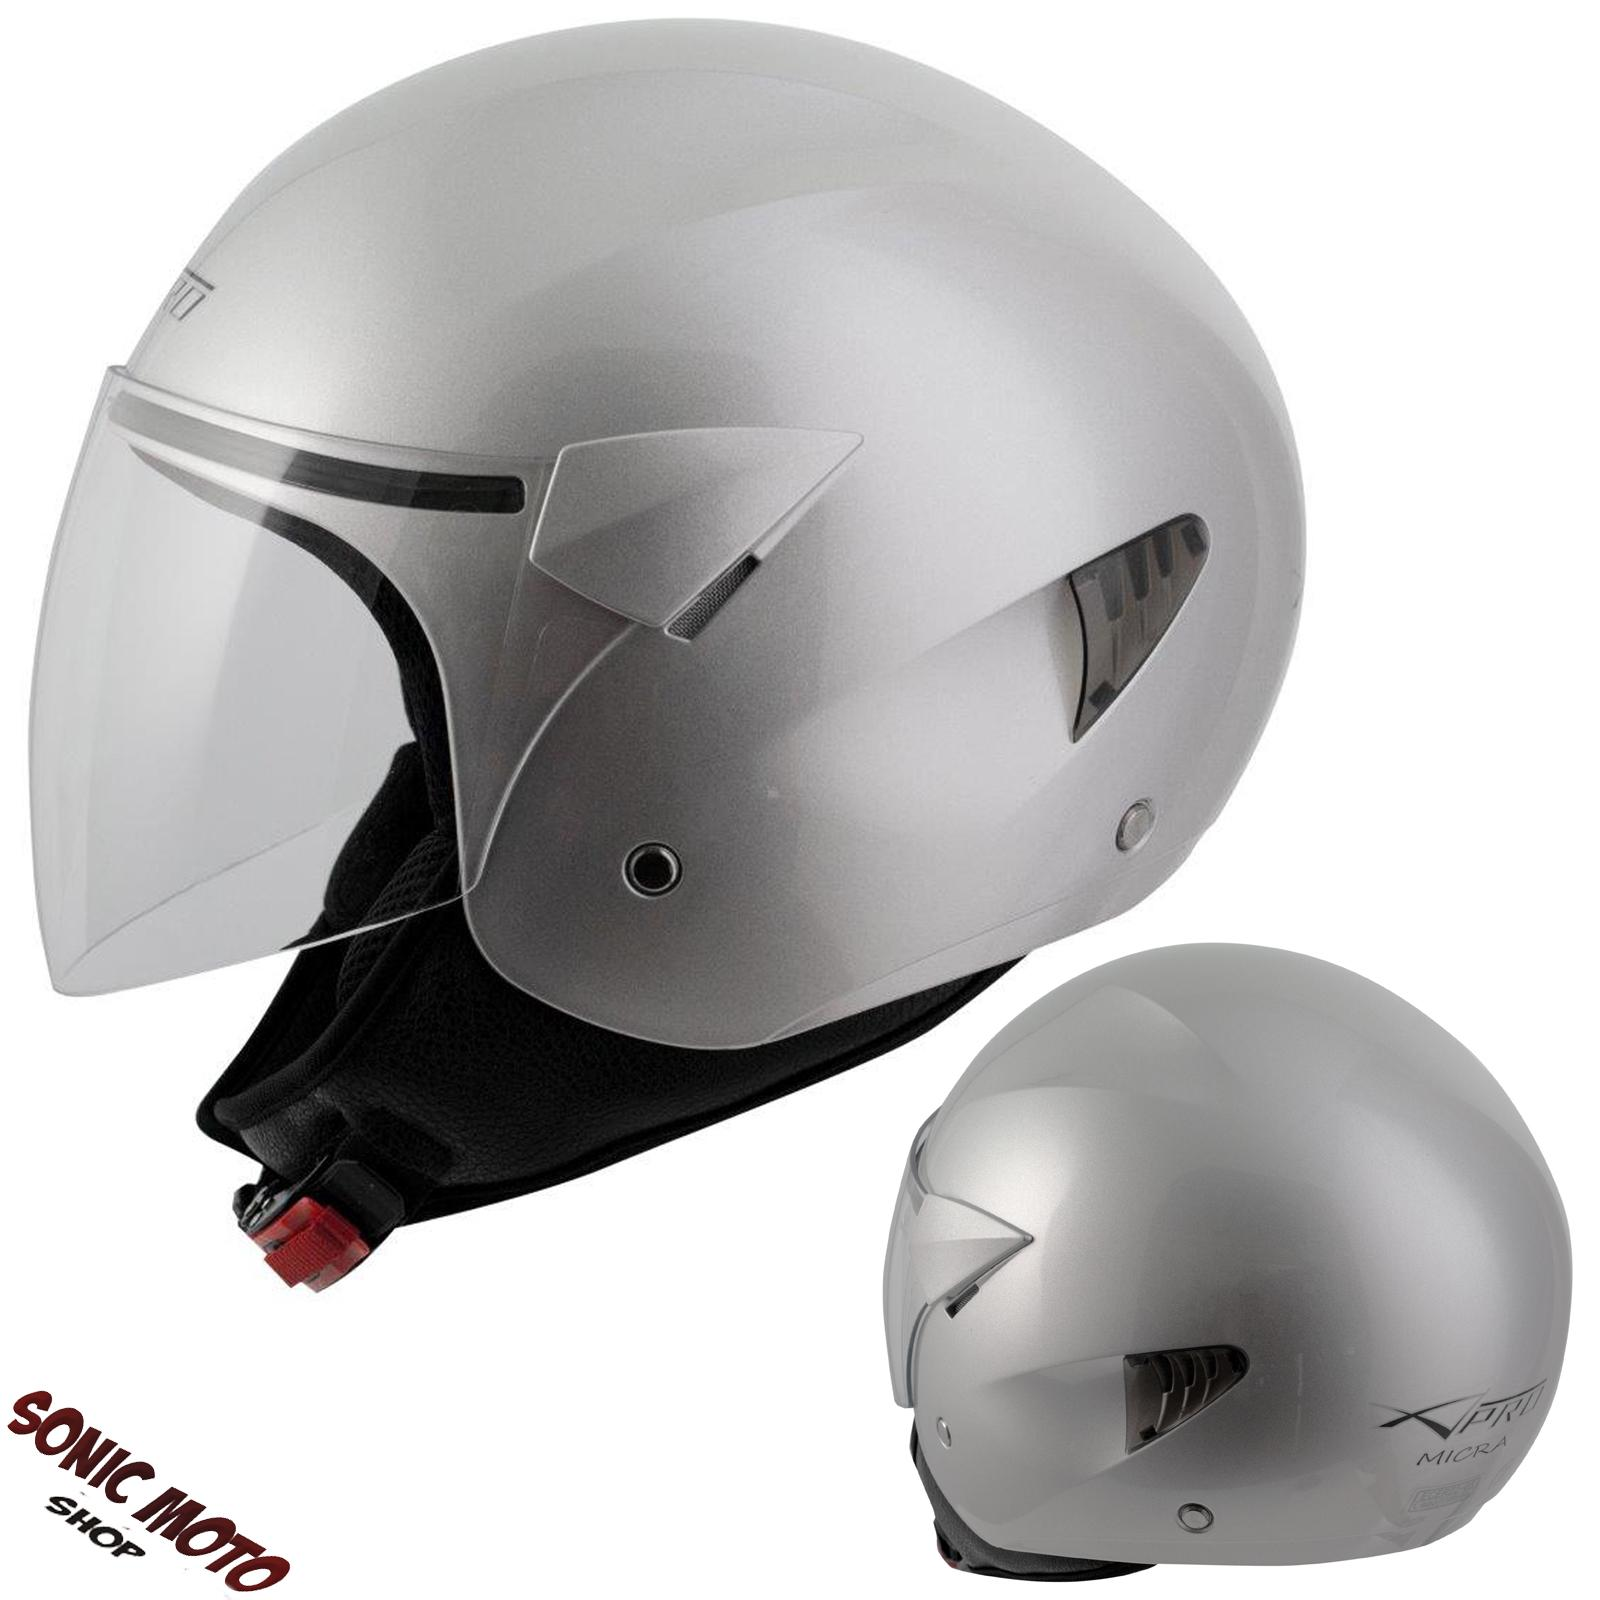 motorradhelm motorrad roller jet helm demi jet scooter. Black Bedroom Furniture Sets. Home Design Ideas